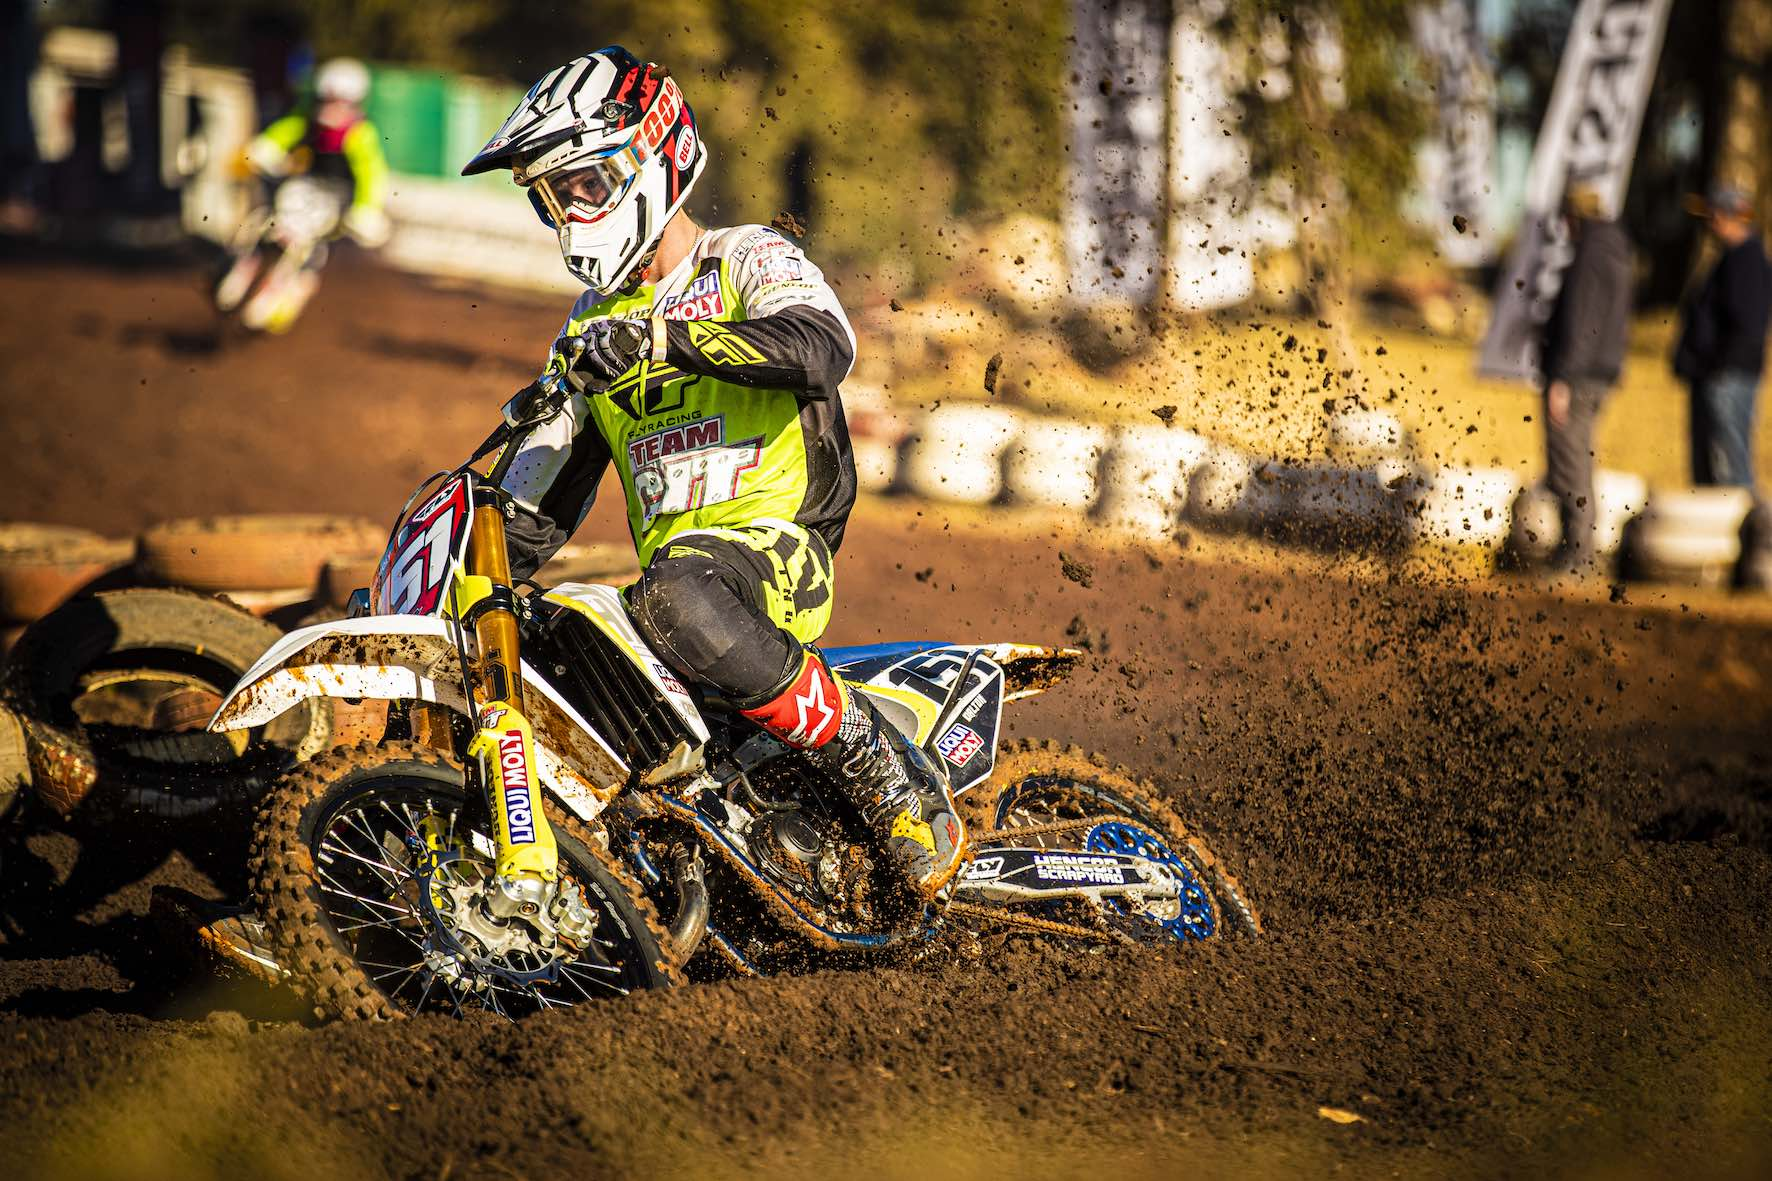 Dalton Venter racing Round 4 of the 2019 SA Motocross Nationals at Dirt Bronco